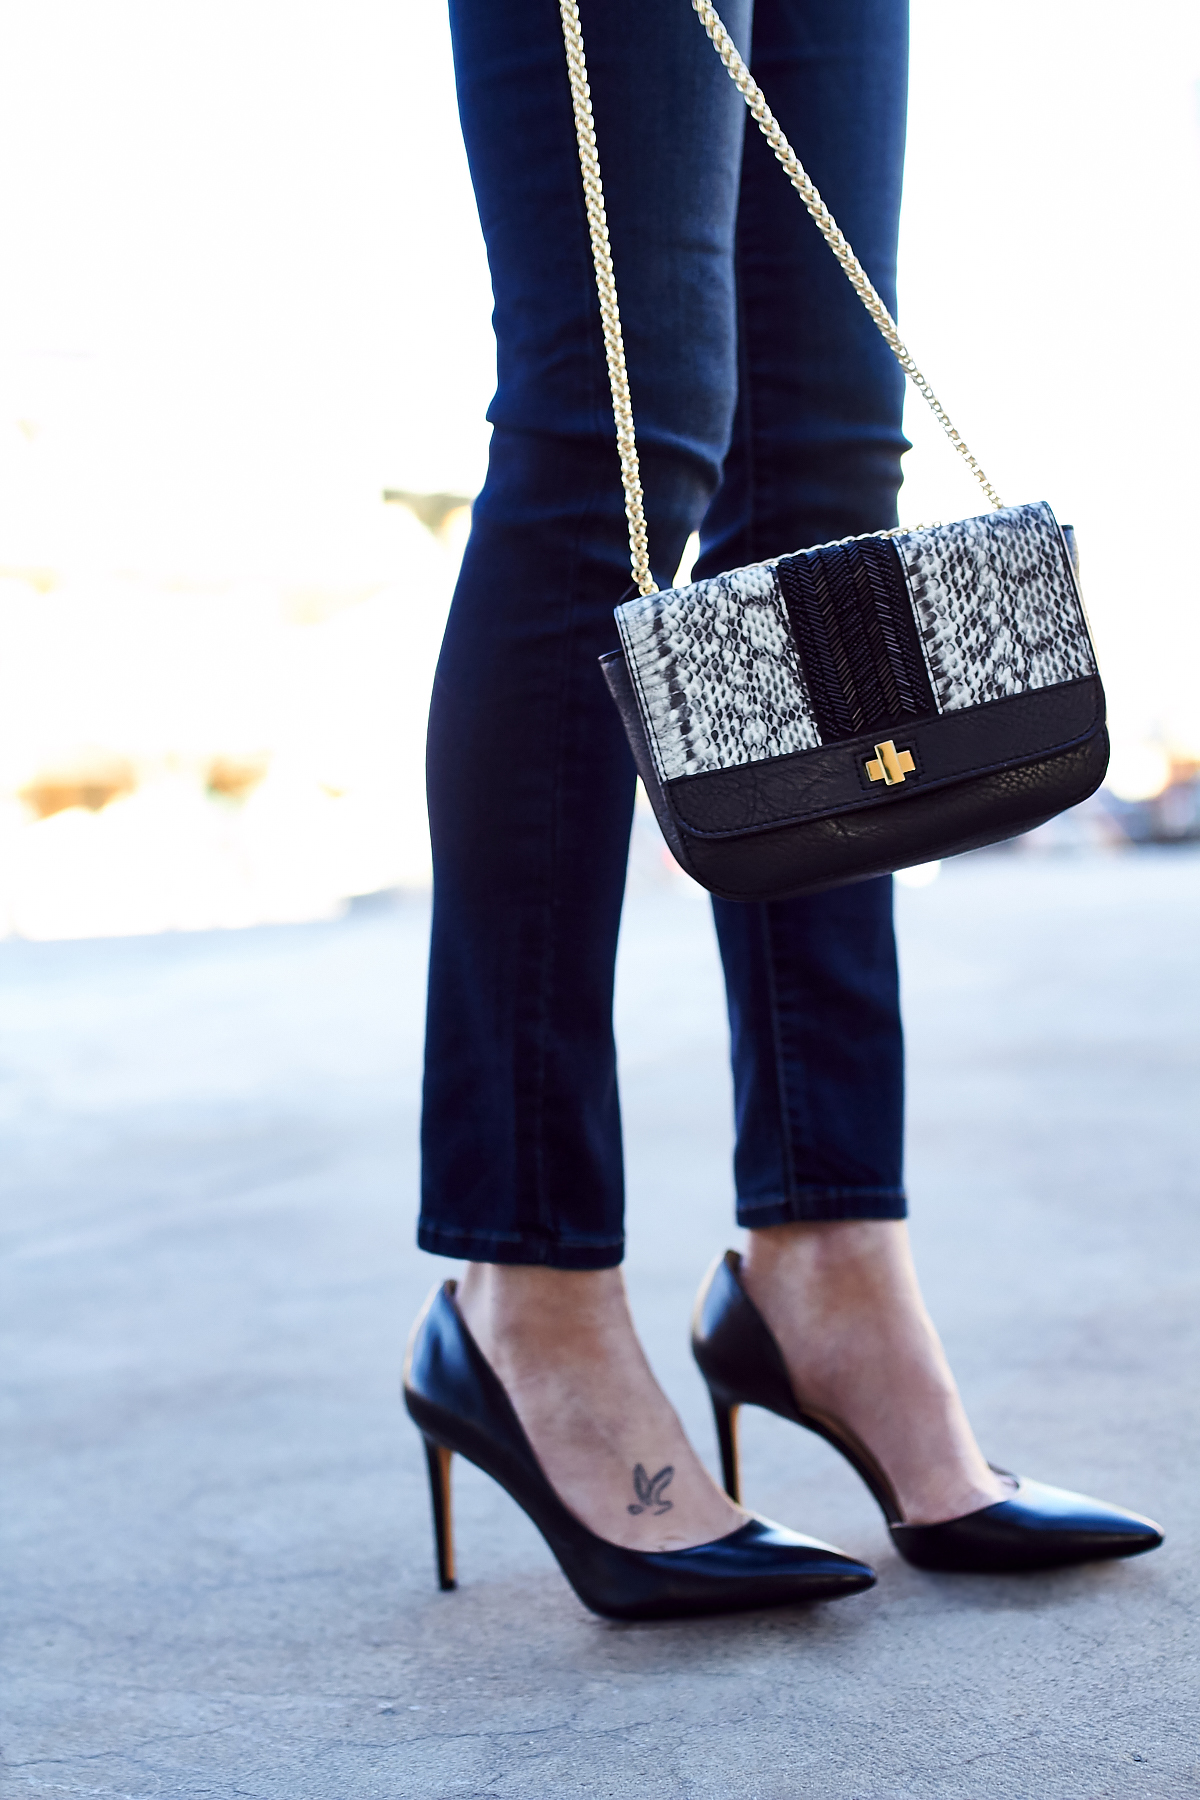 New Year's Eve Outfit, Embellished Handbag, Black Pumps